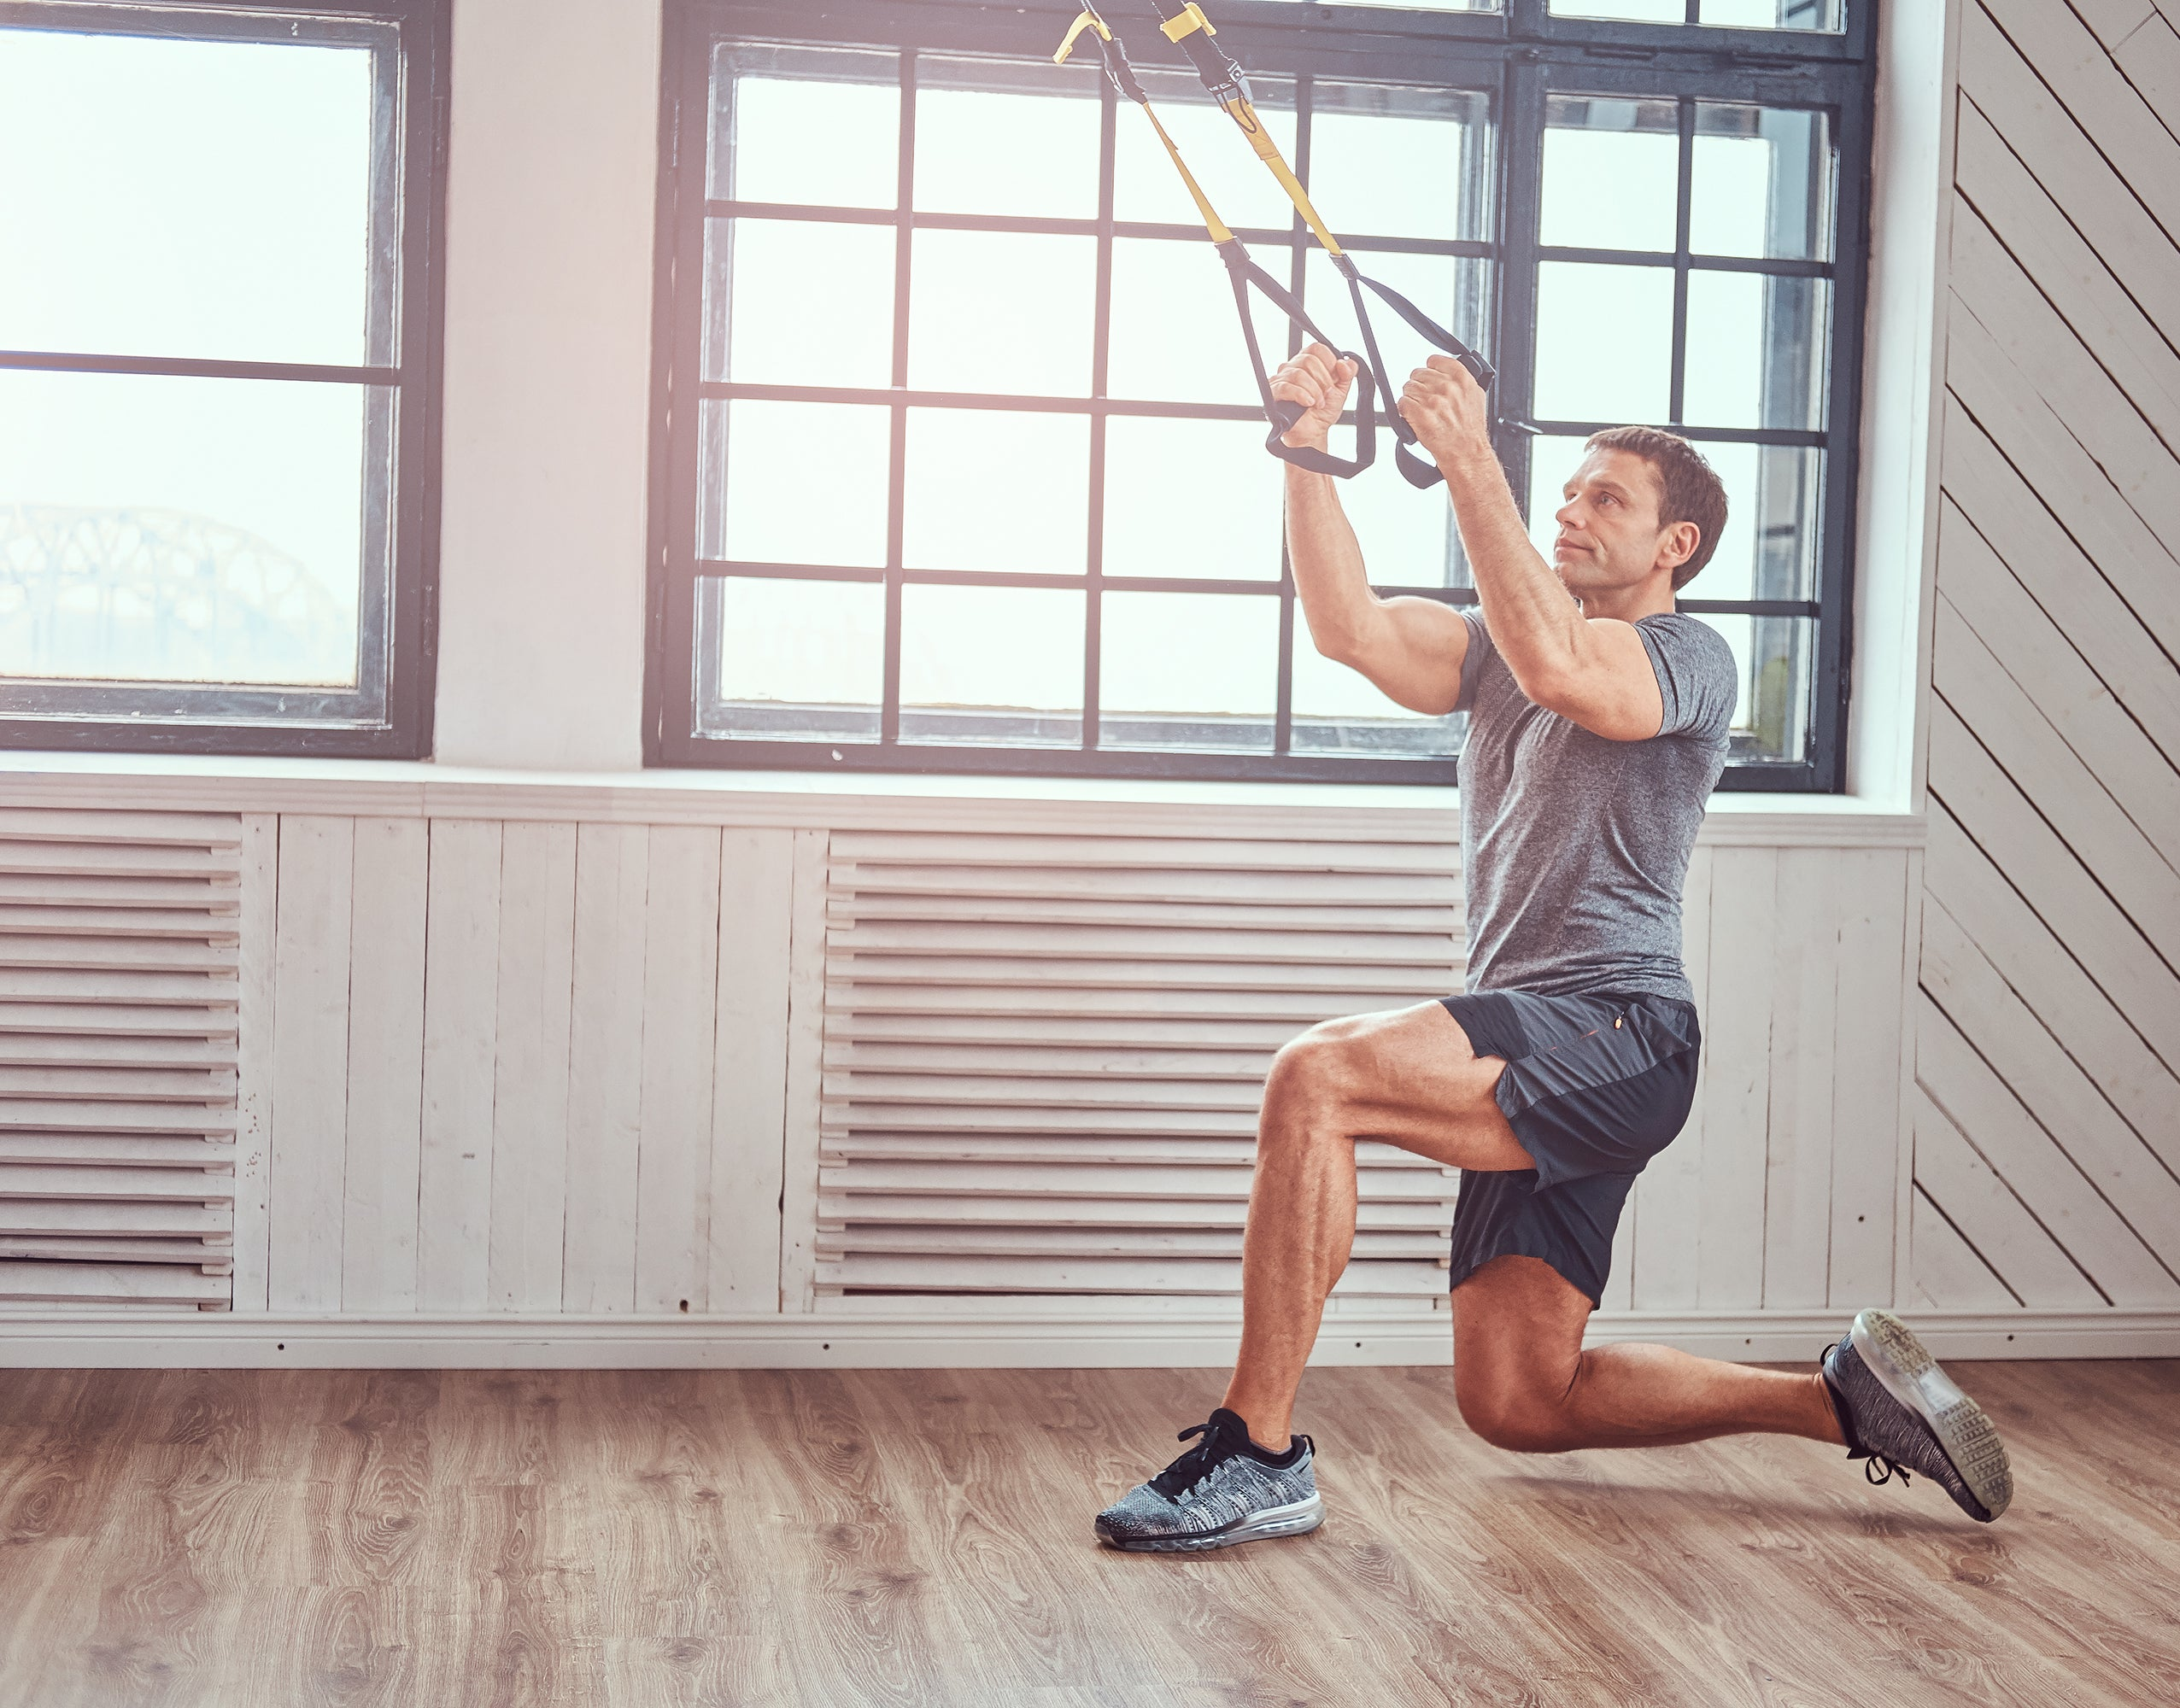 Suspension Trainers for Indoor Winter Exercise Workouts